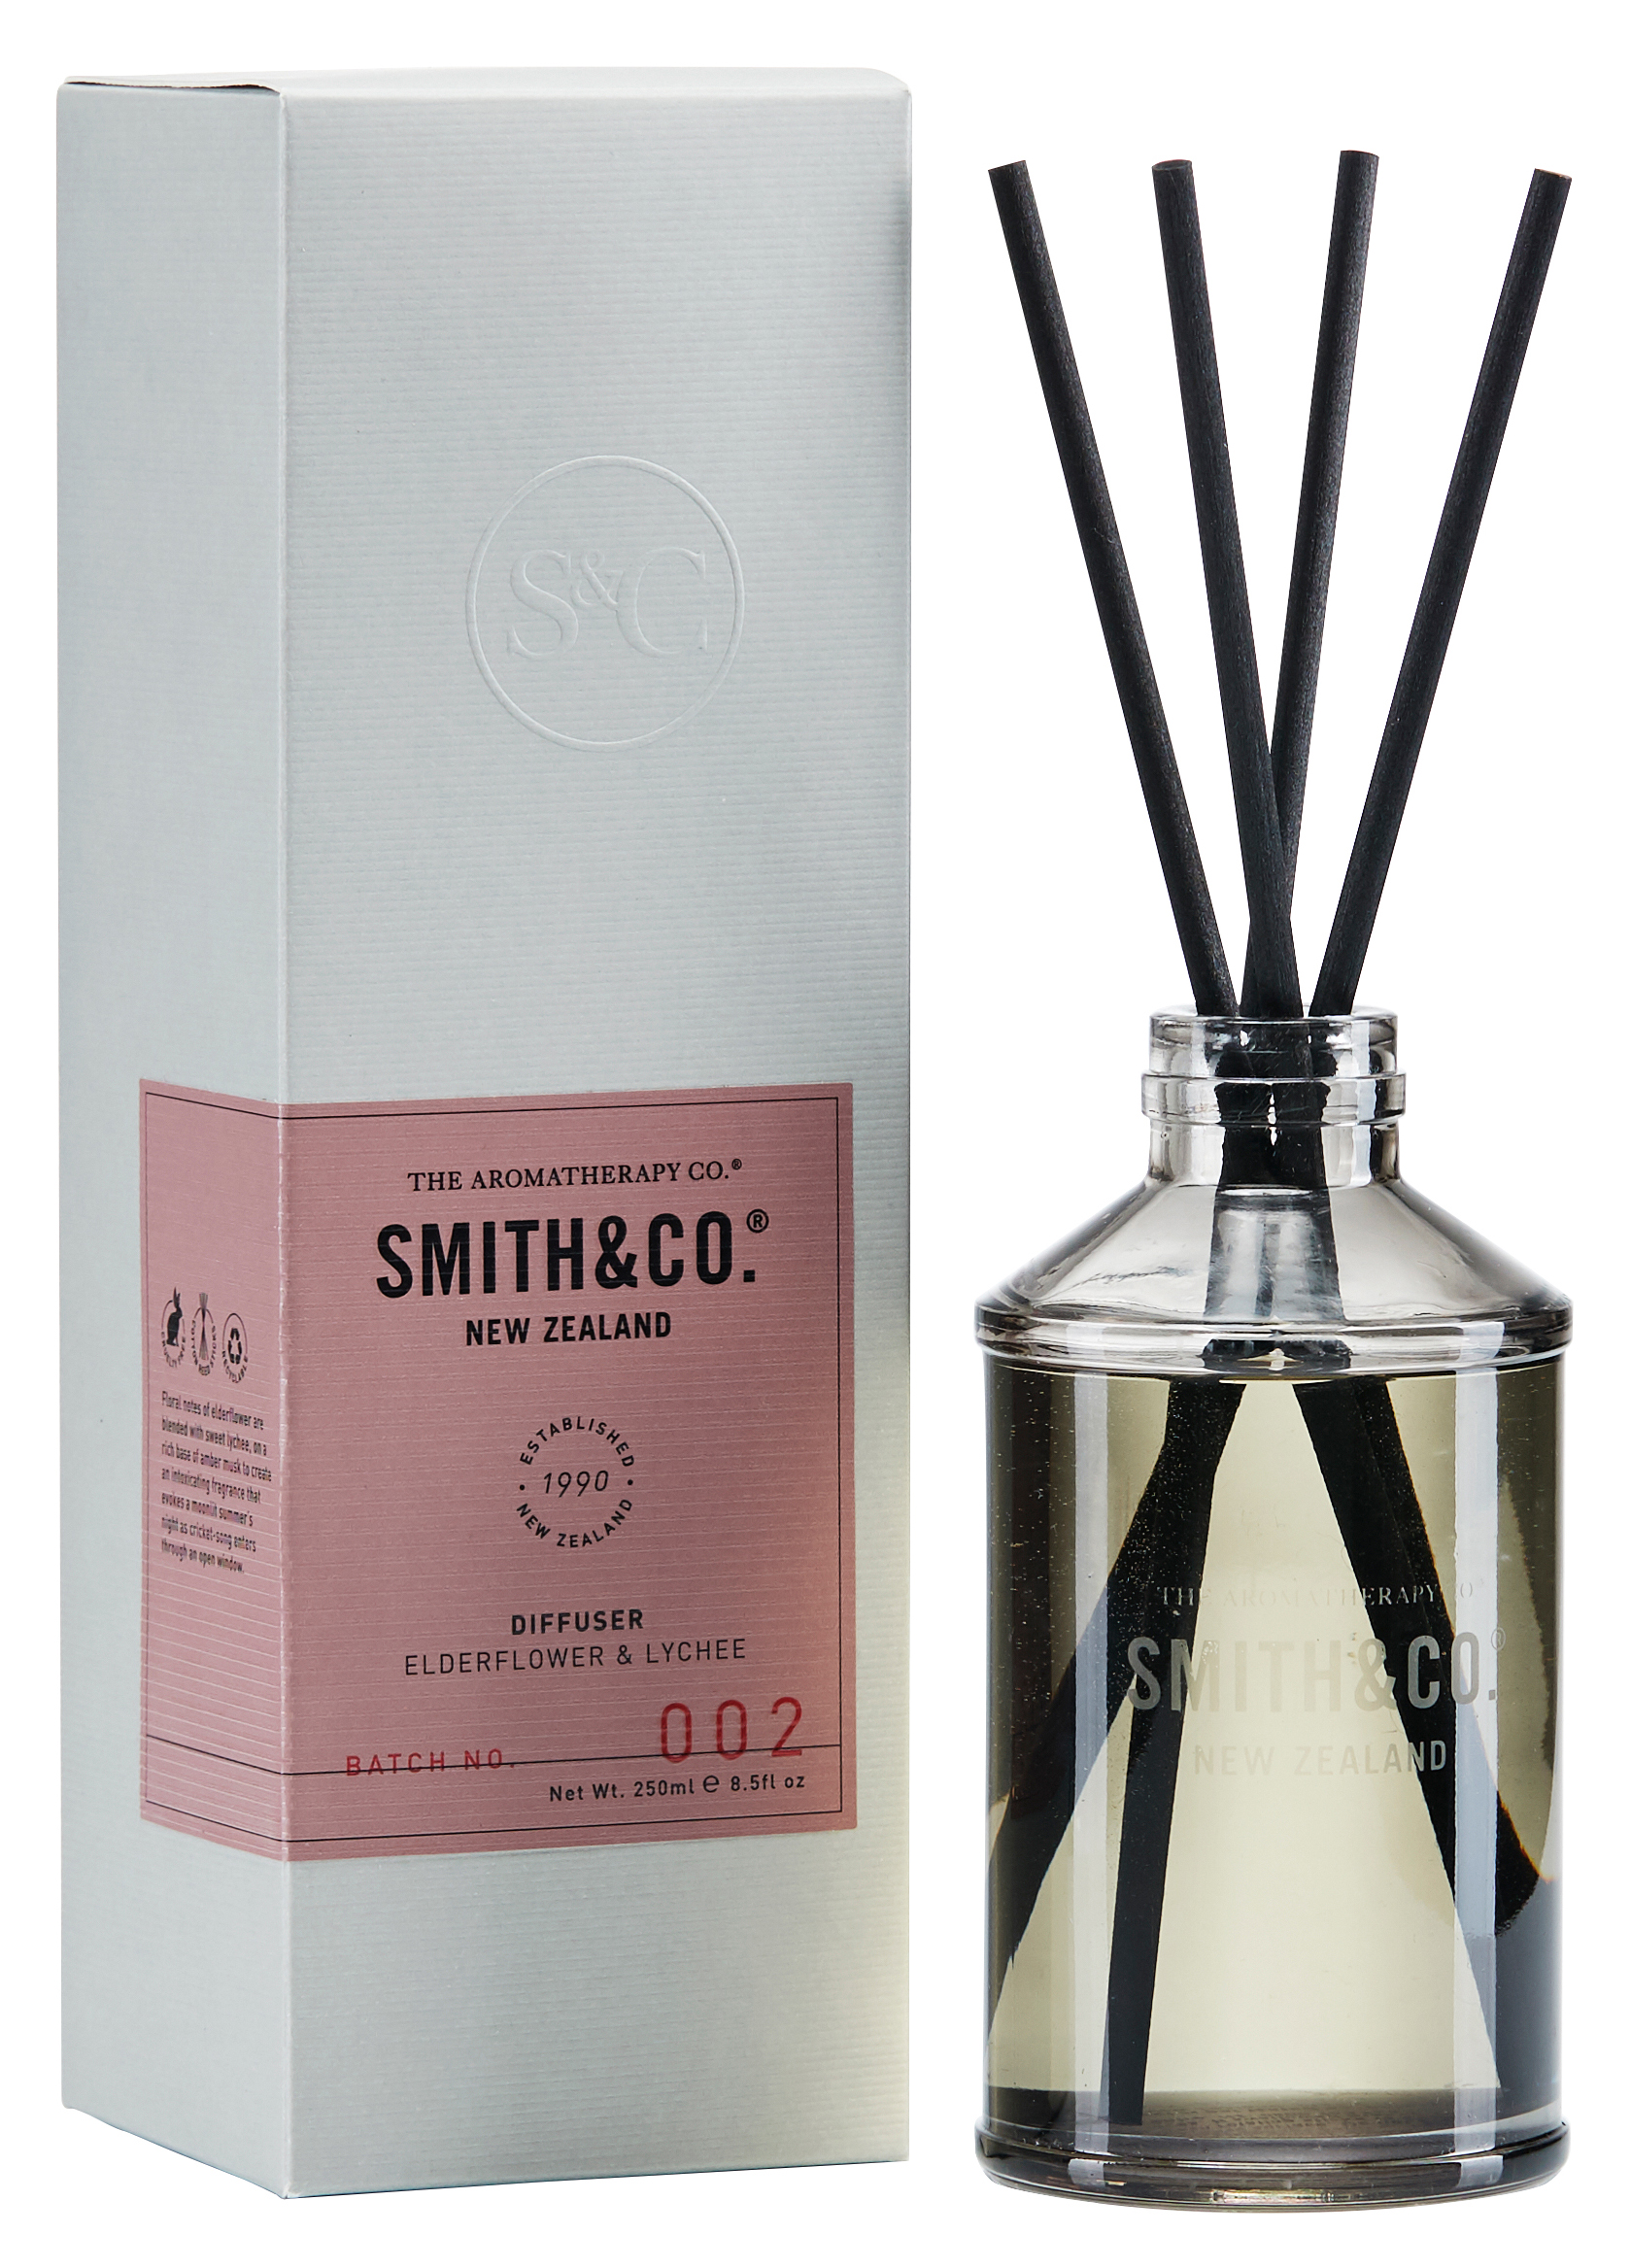 Elderflower & Lychee Diffuser från Smith & Co.